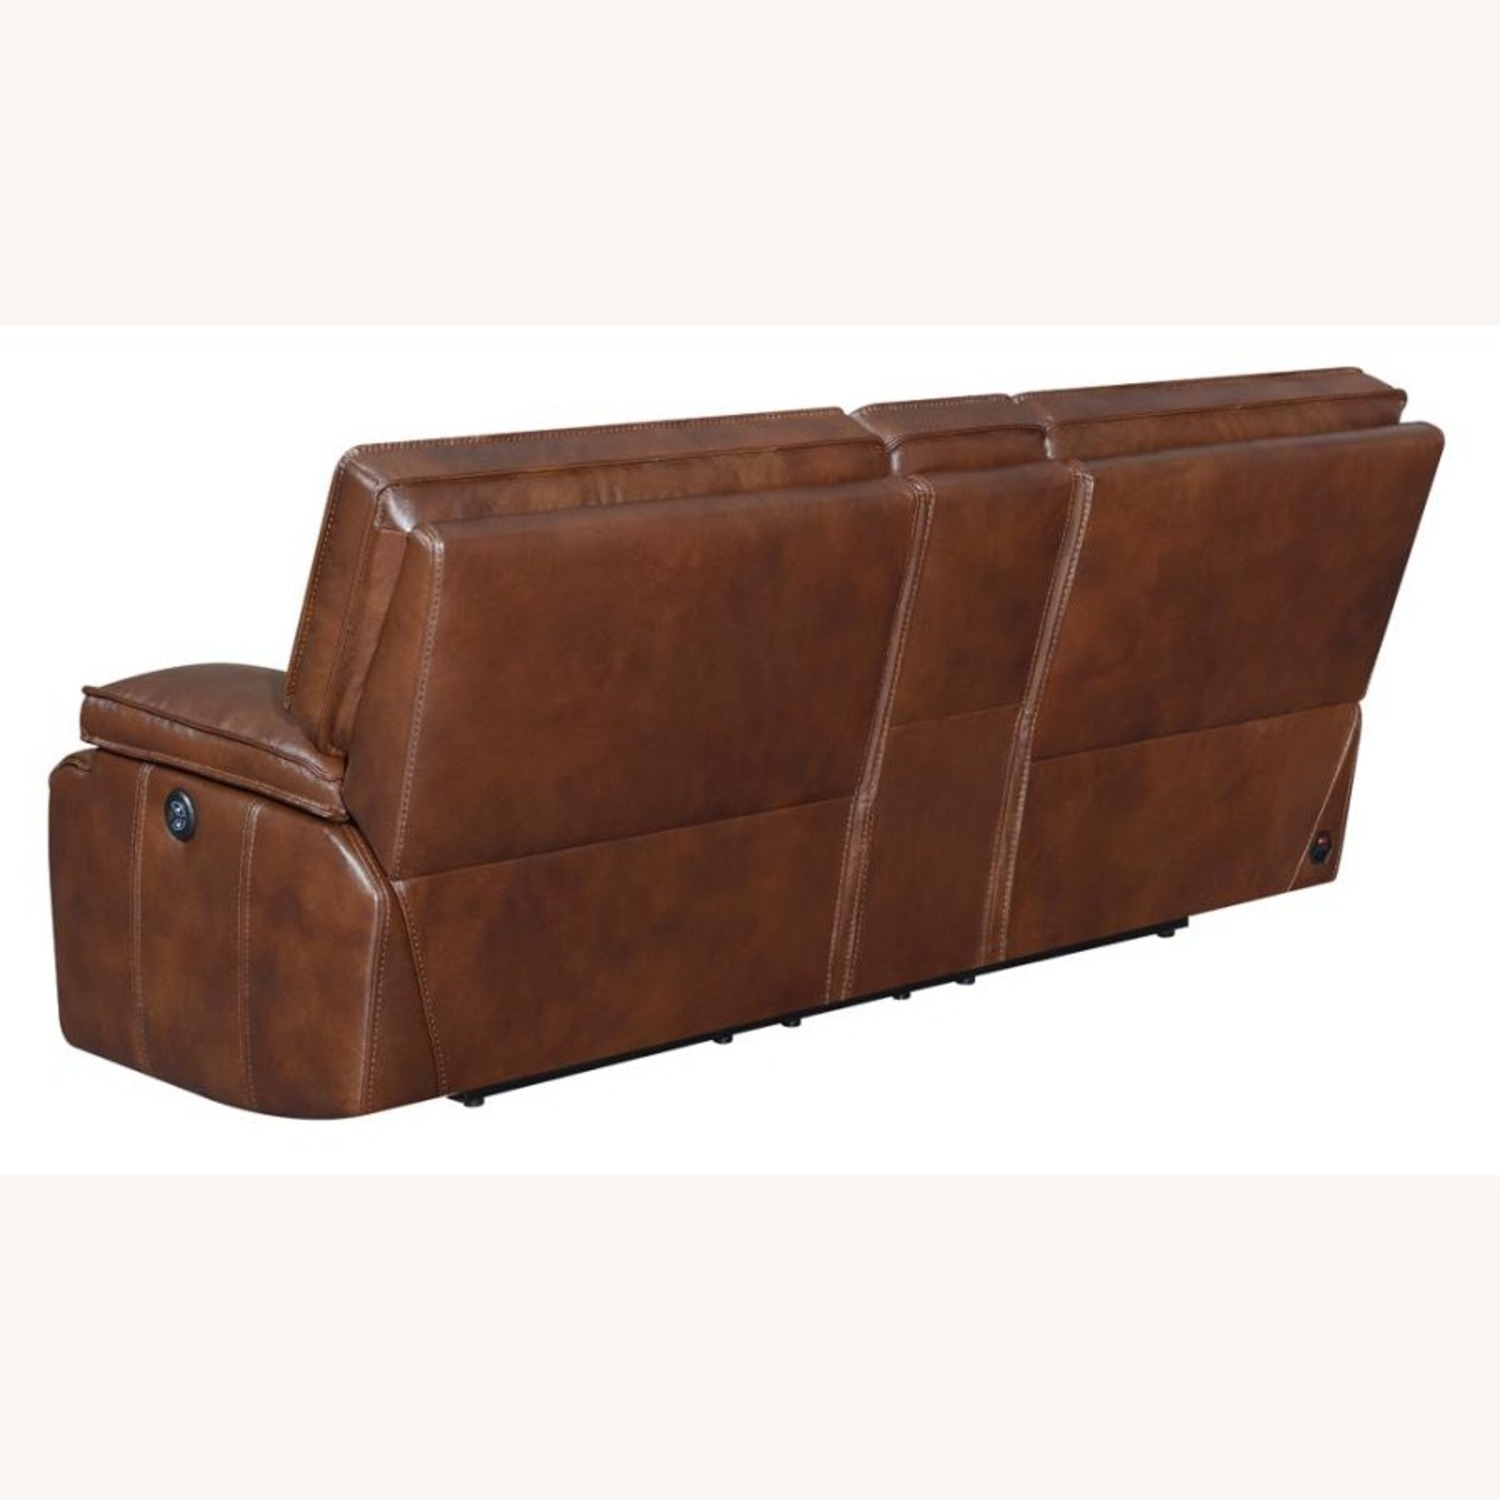 Power Loveseat In Saddle Brown W/ Console - image-3